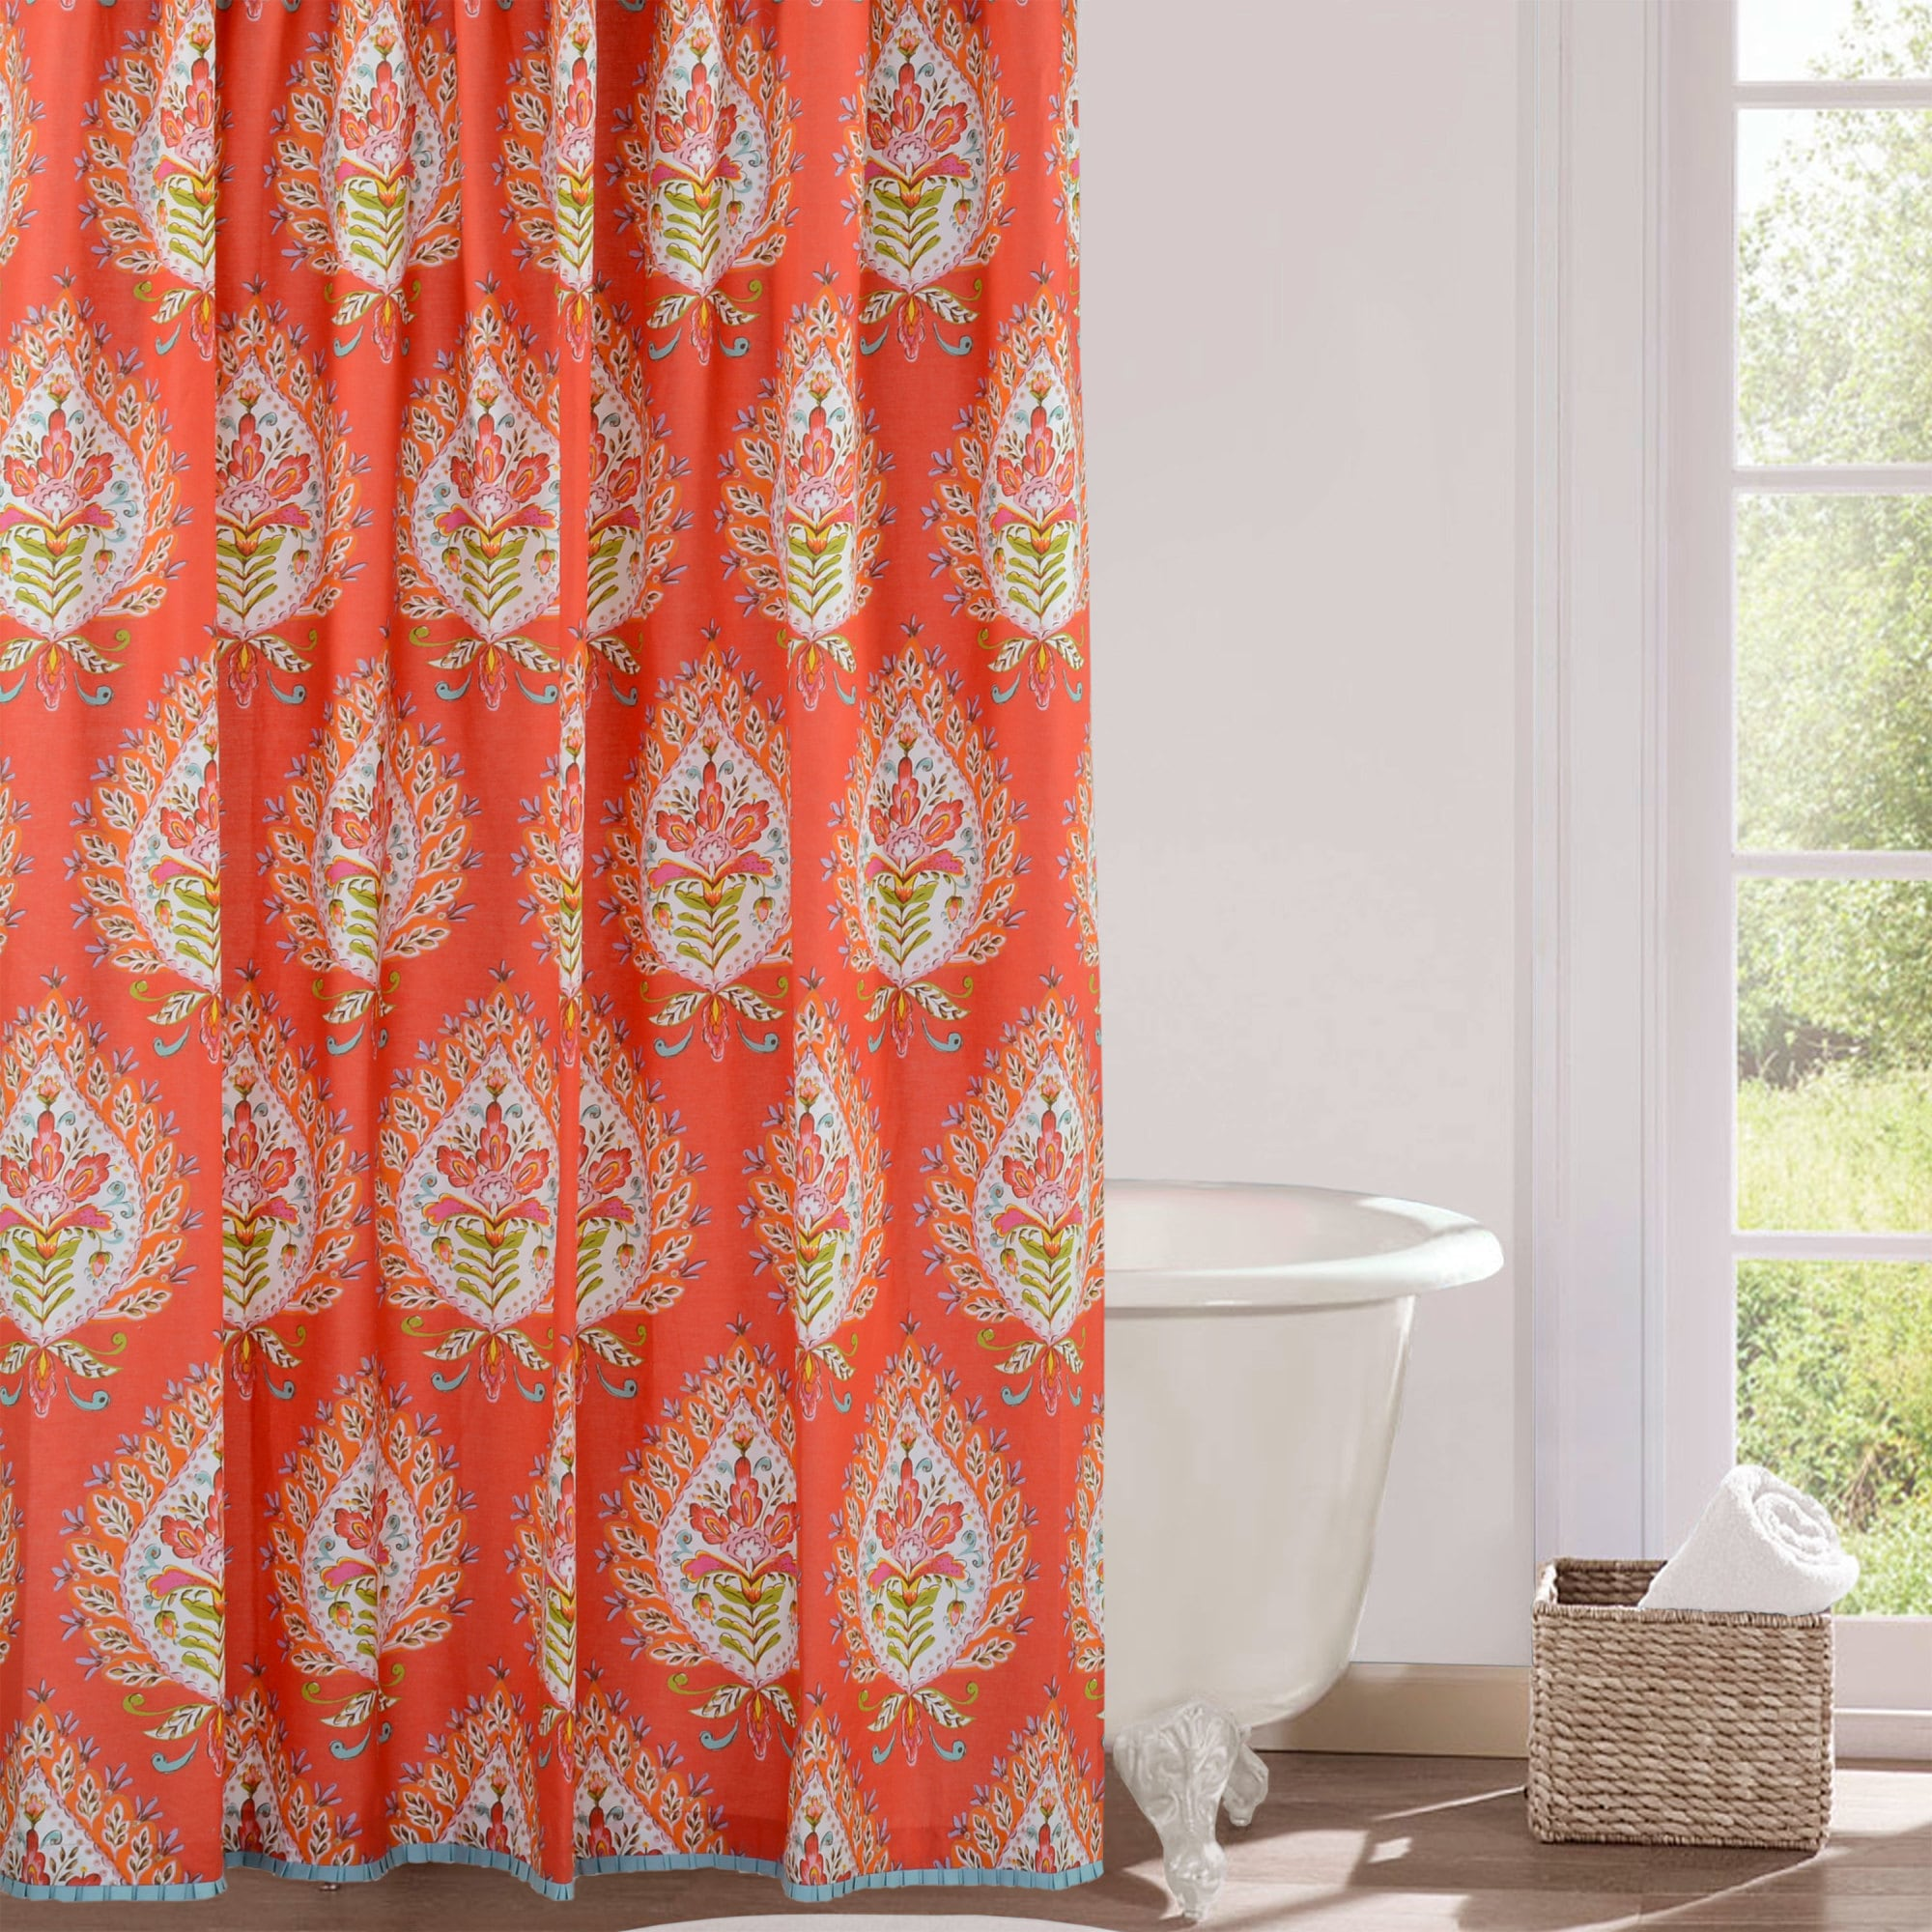 pinterest future plum blomma and bow house curtains new curtain pin bathroom outfitters apartments shower southwest urban